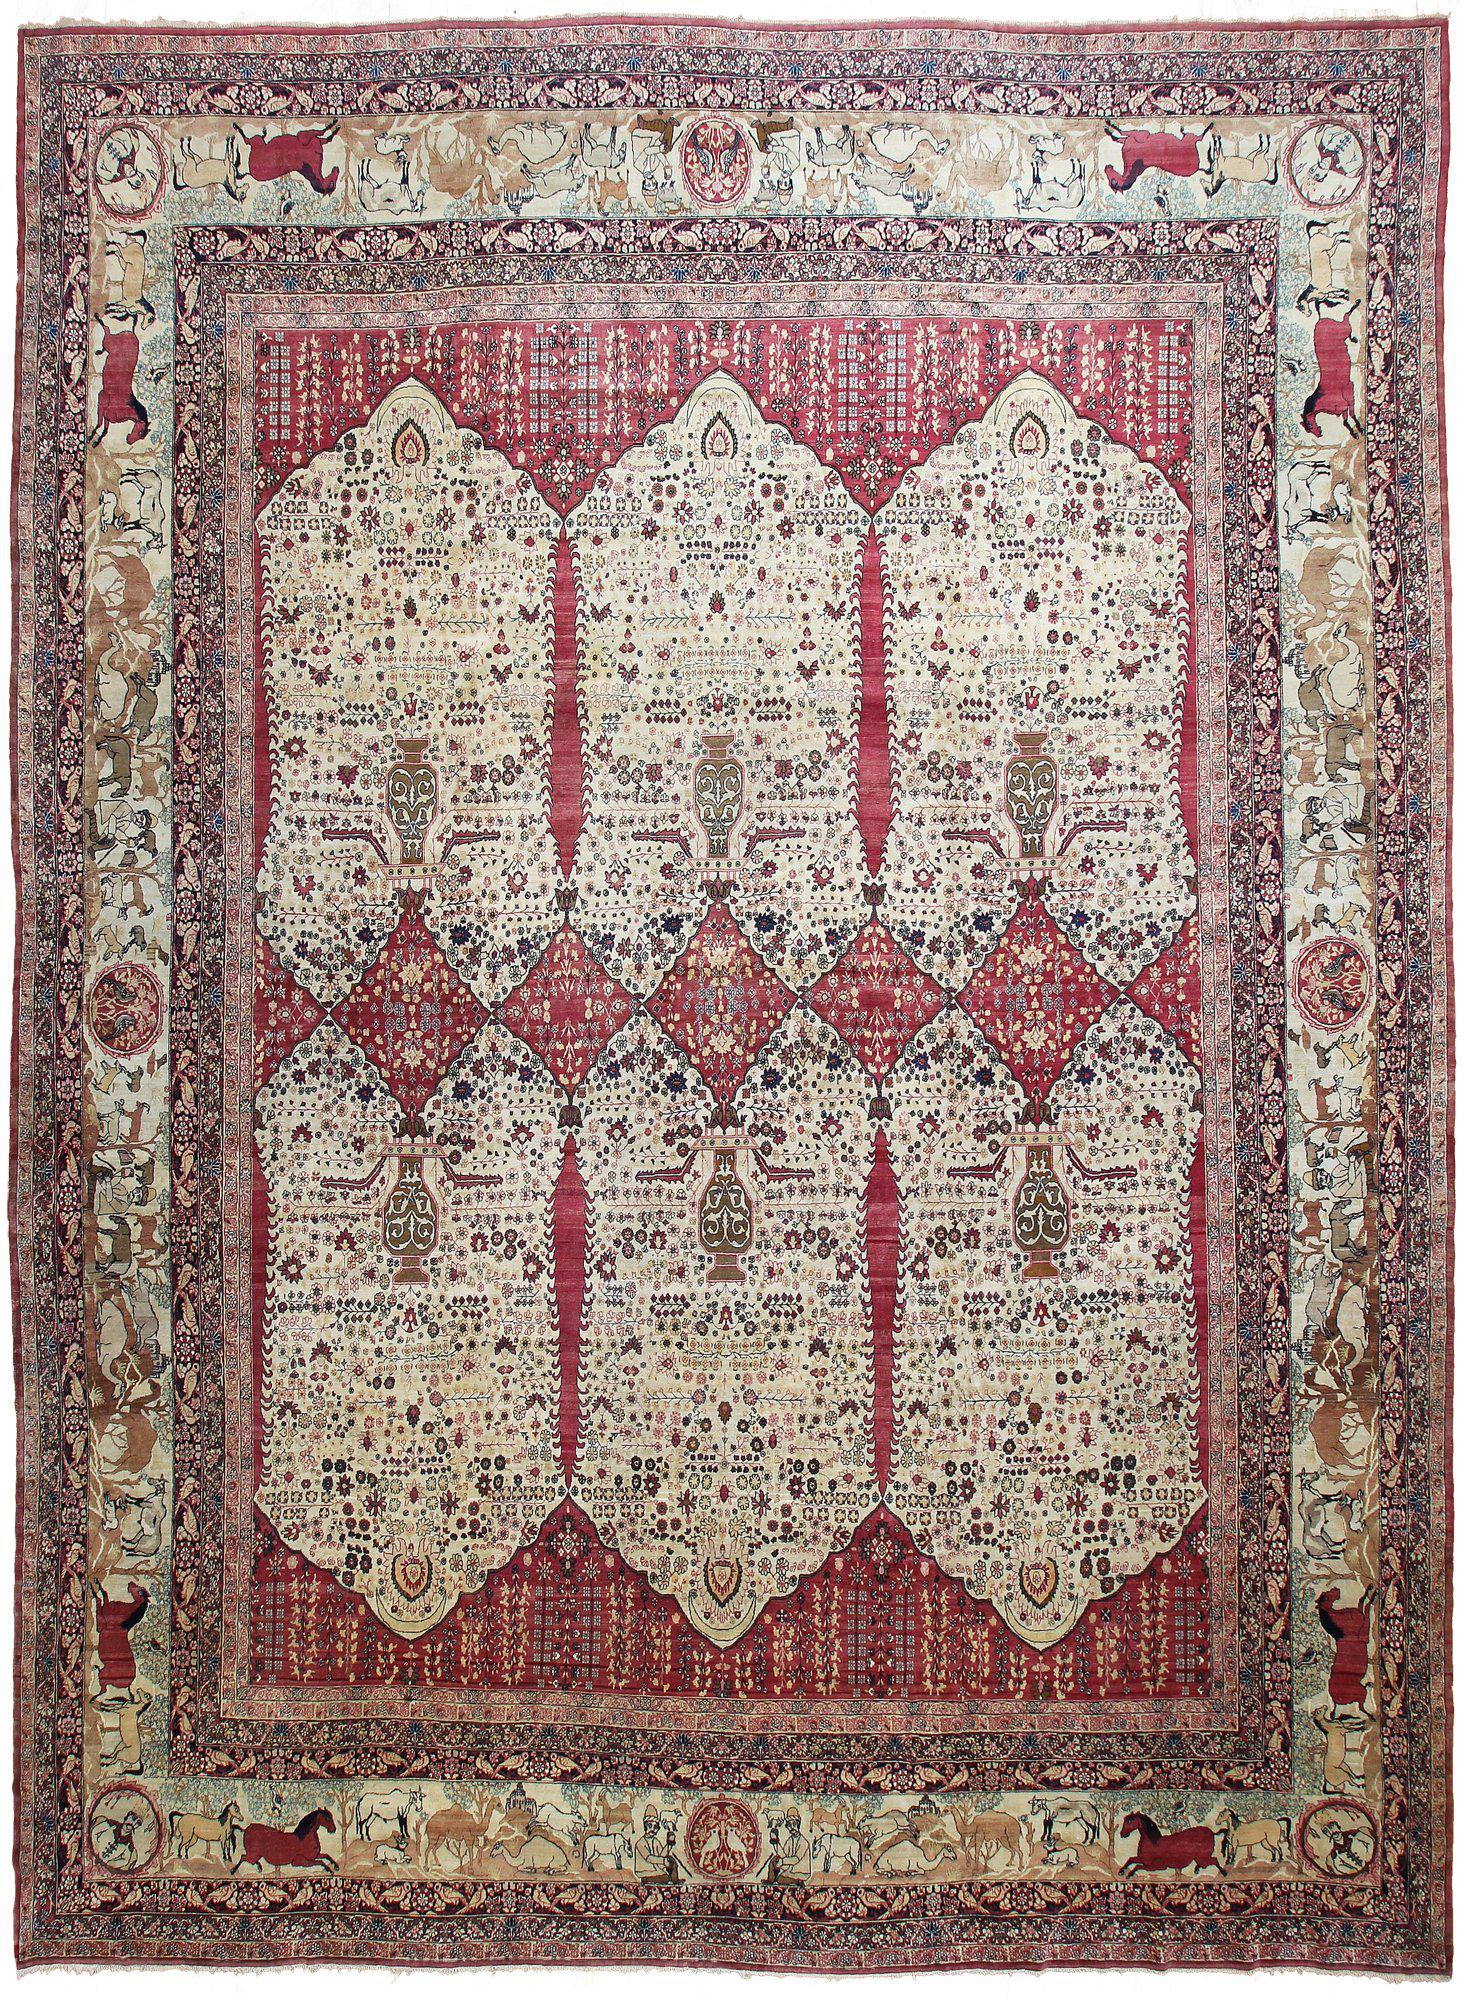 Antique Kerman Ravar Rug Pictorial-Turco Persian Rug Company Inc.